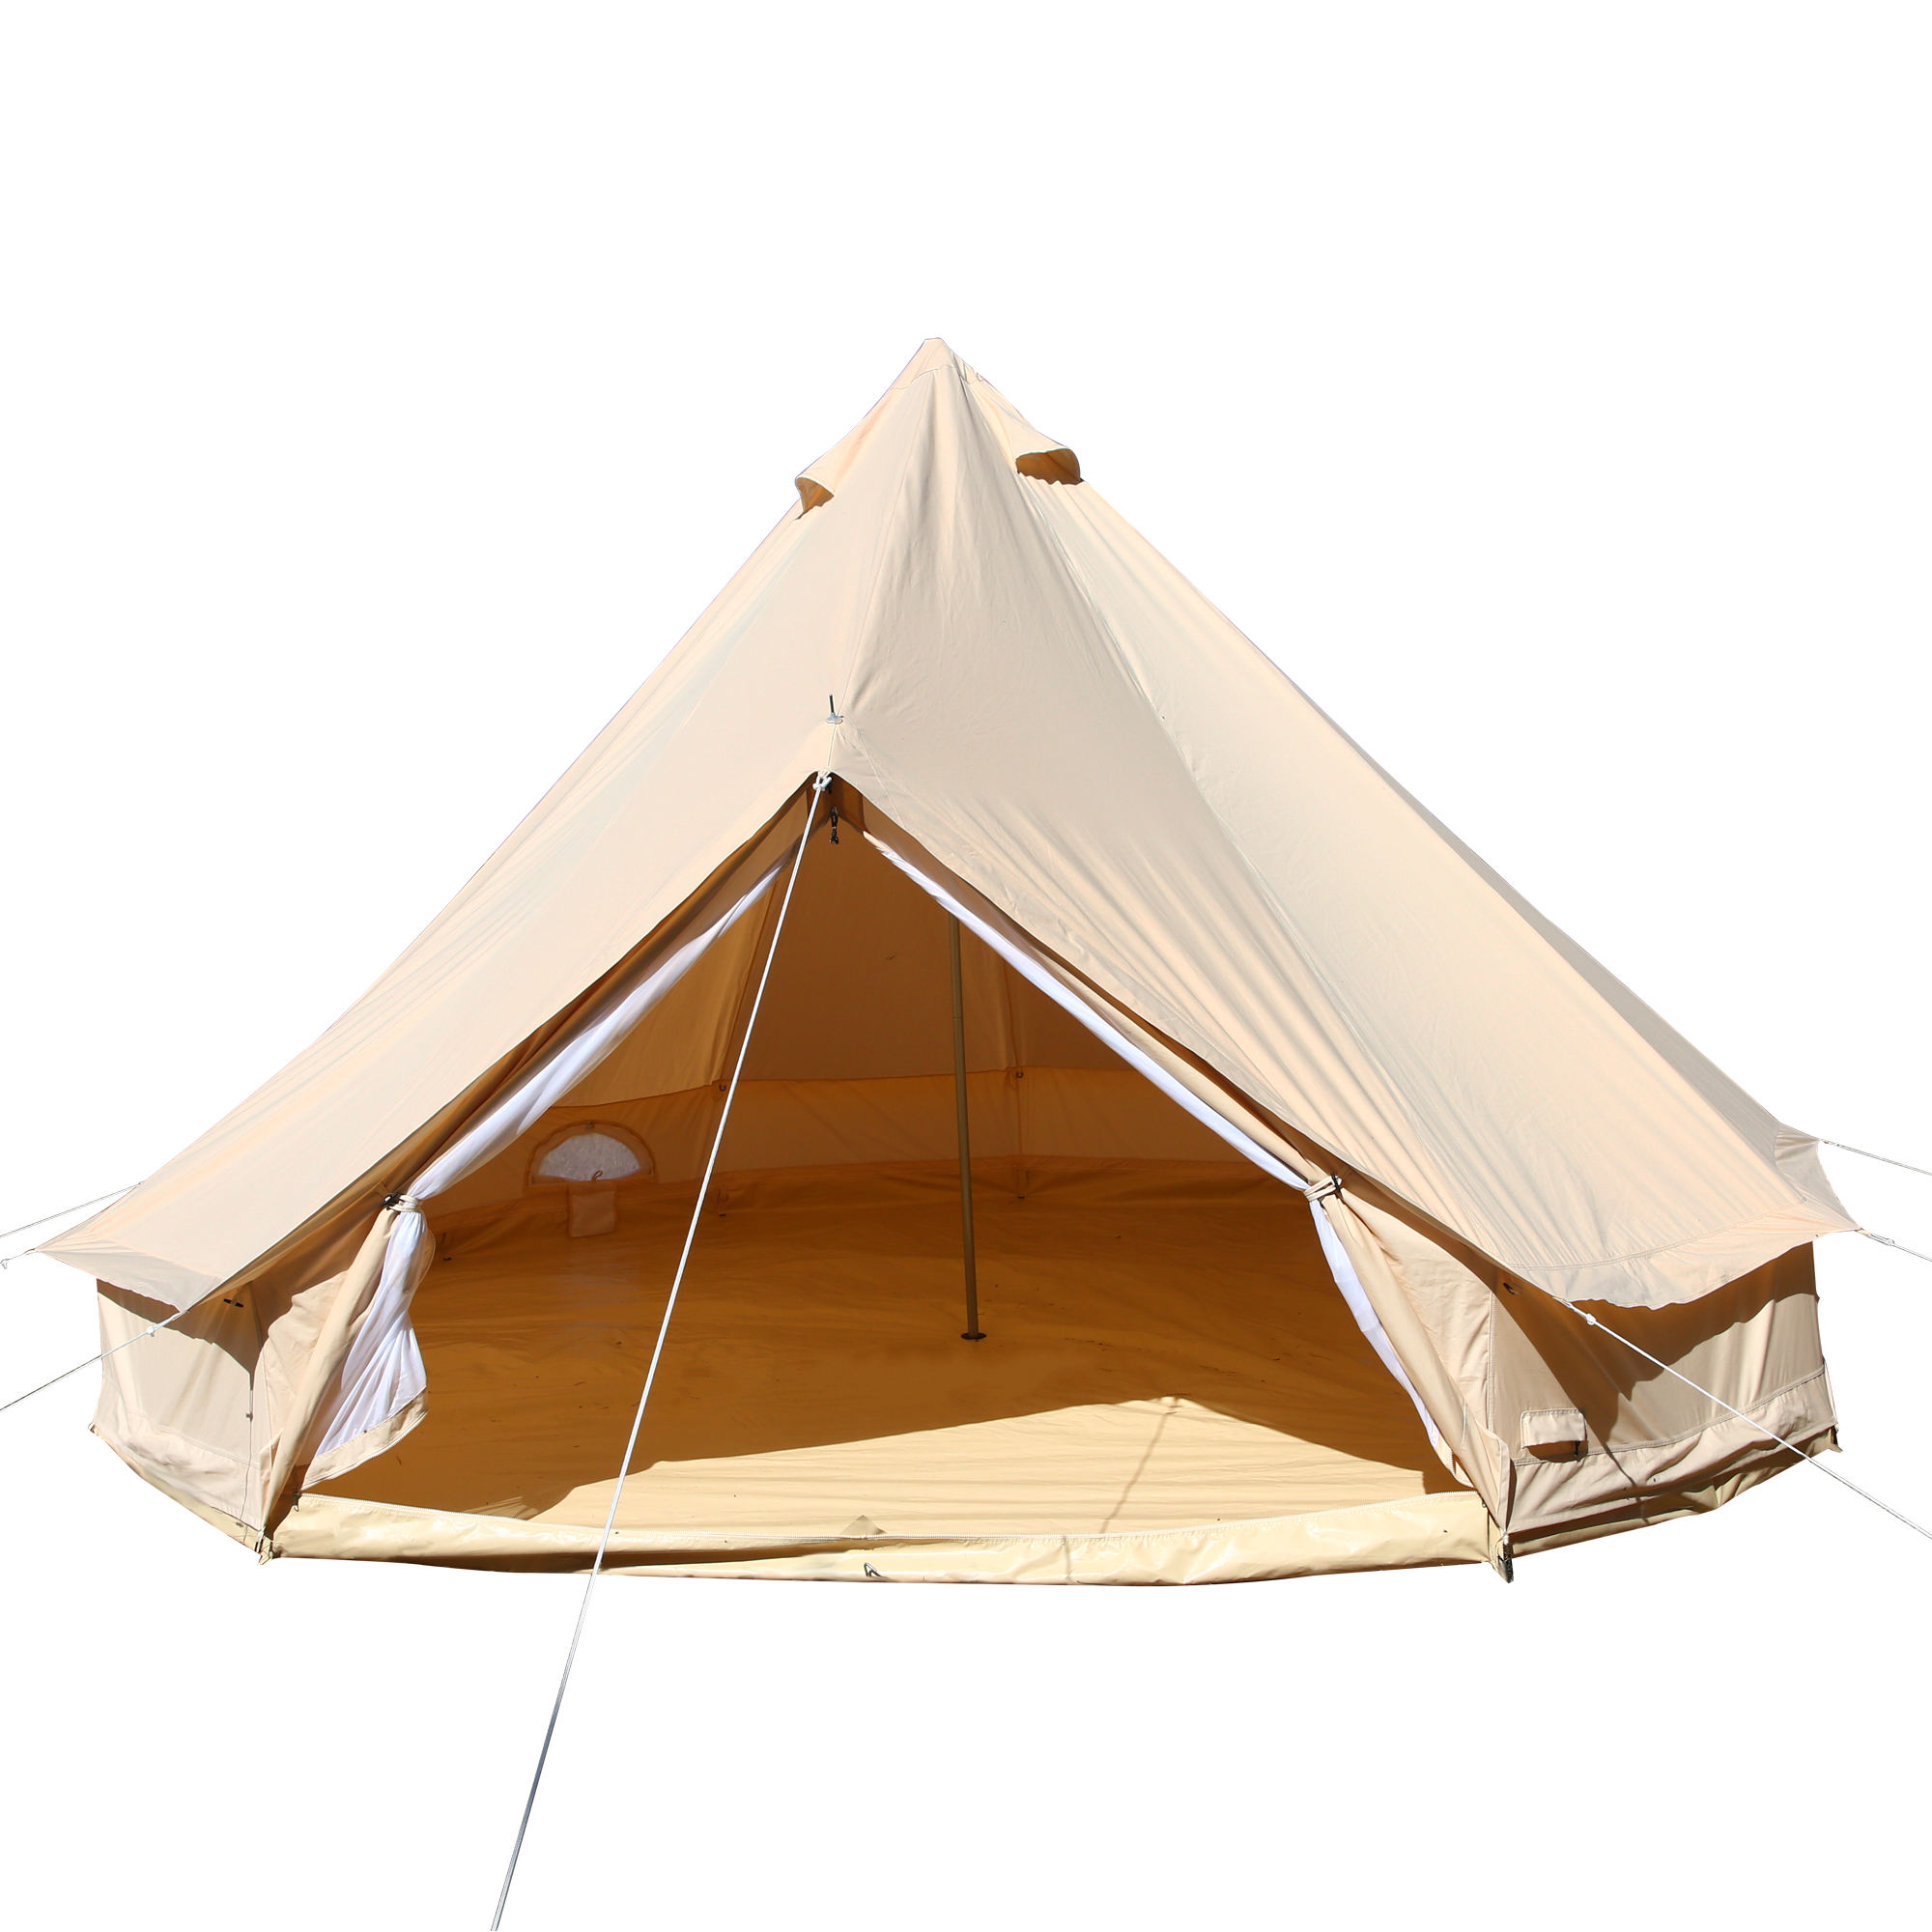 luxury glamping 3m 4m 5m 6m 7m cotton canvas bell tent for outdoor camping